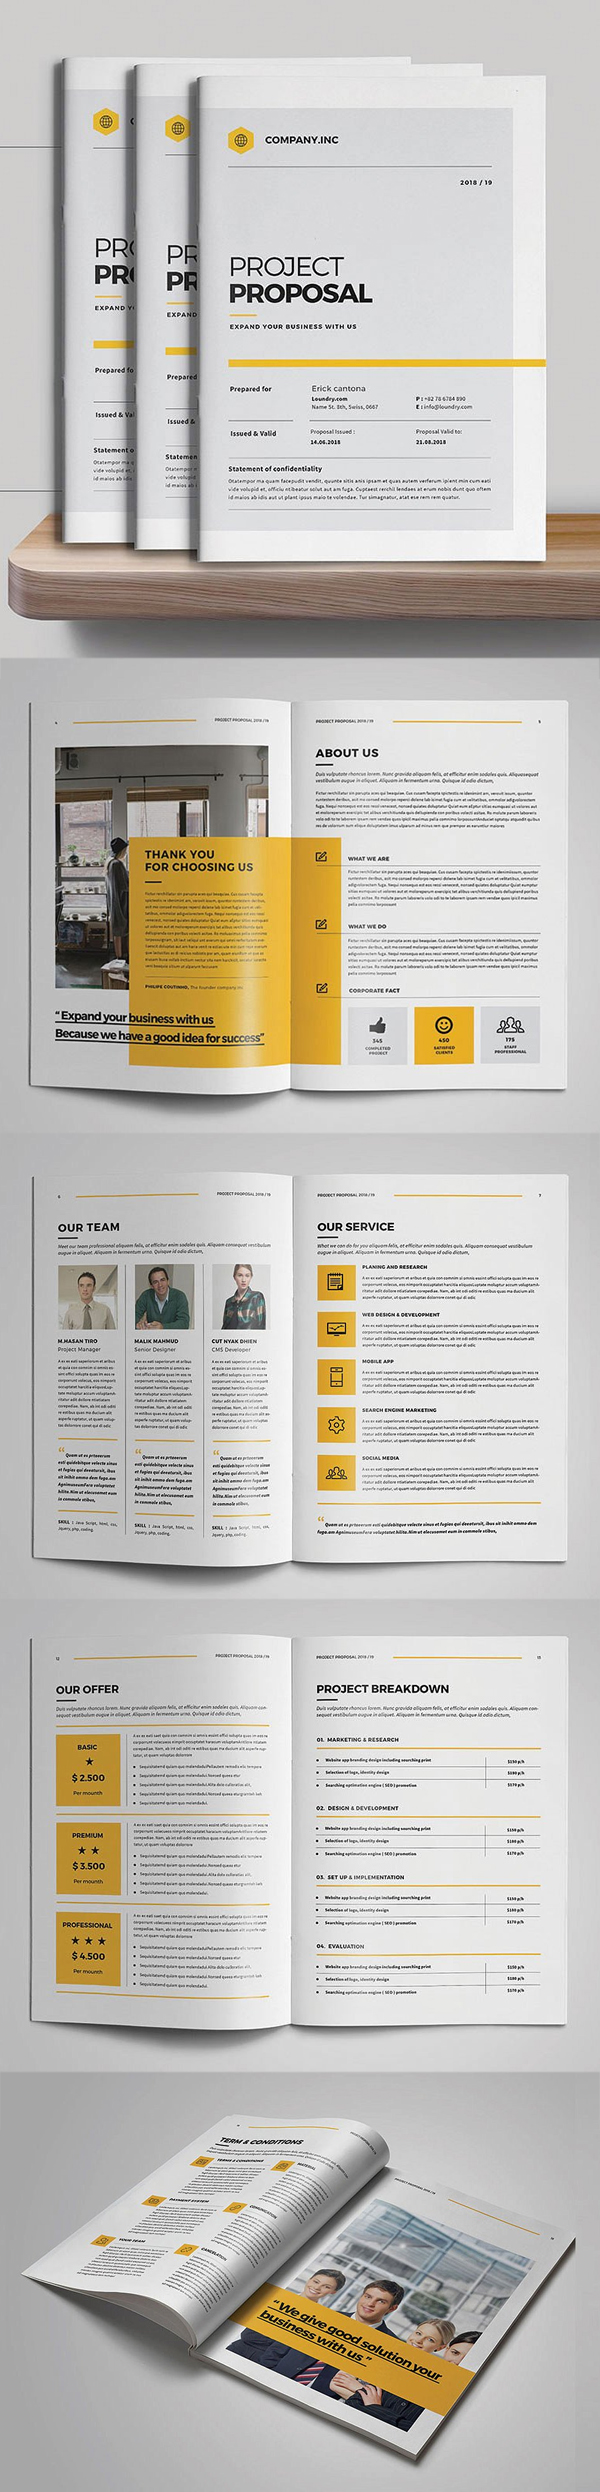 Business proposal templates design graphic design junction professional business proposal templates design 13 cheaphphosting Images